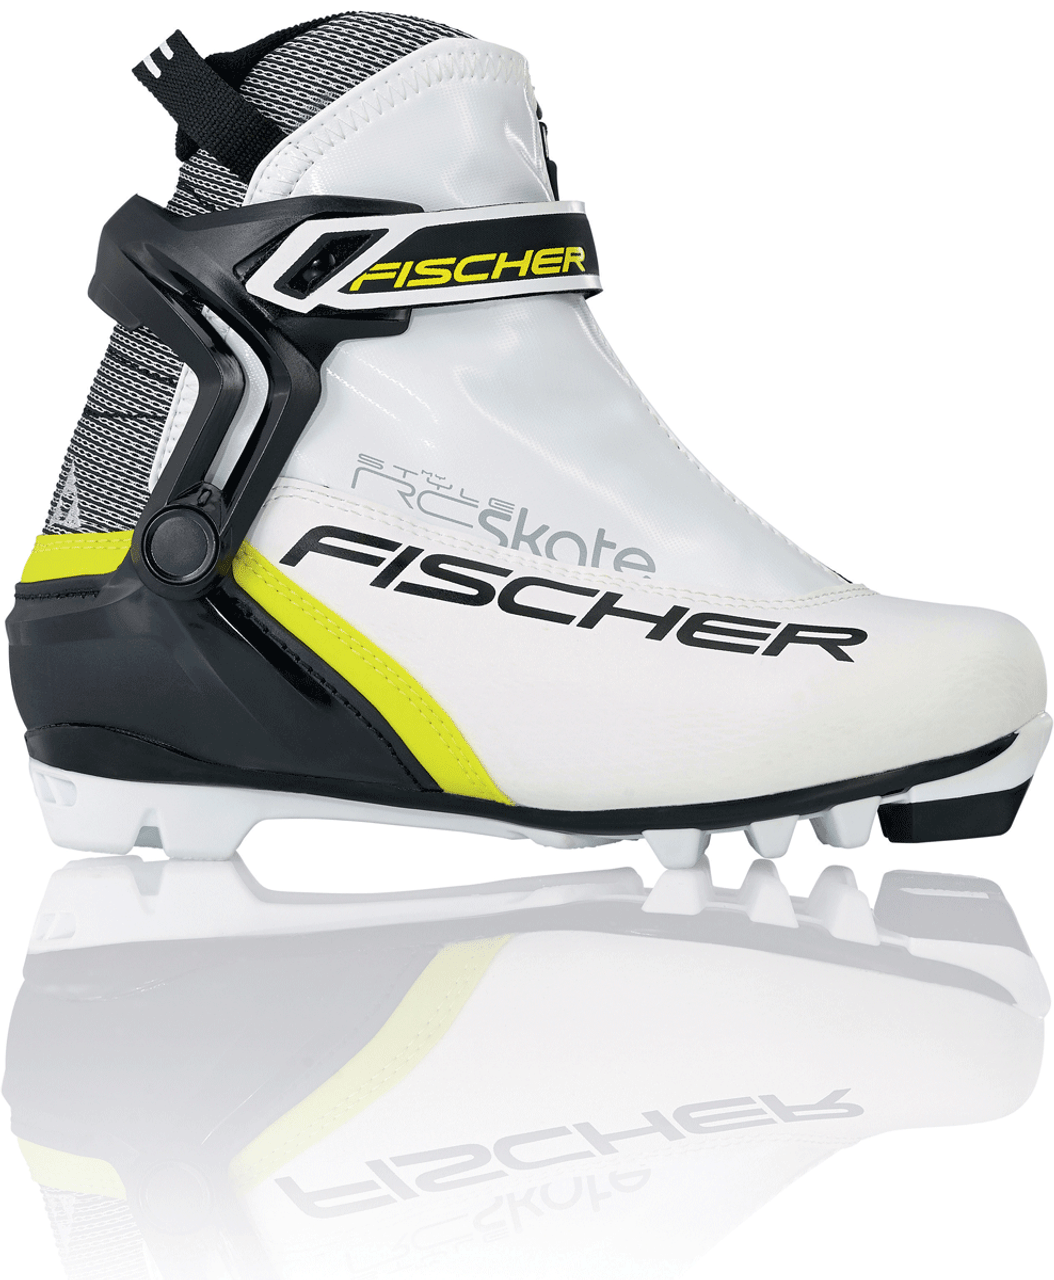 Fischer RC Skate My Style 38 jmIUh79